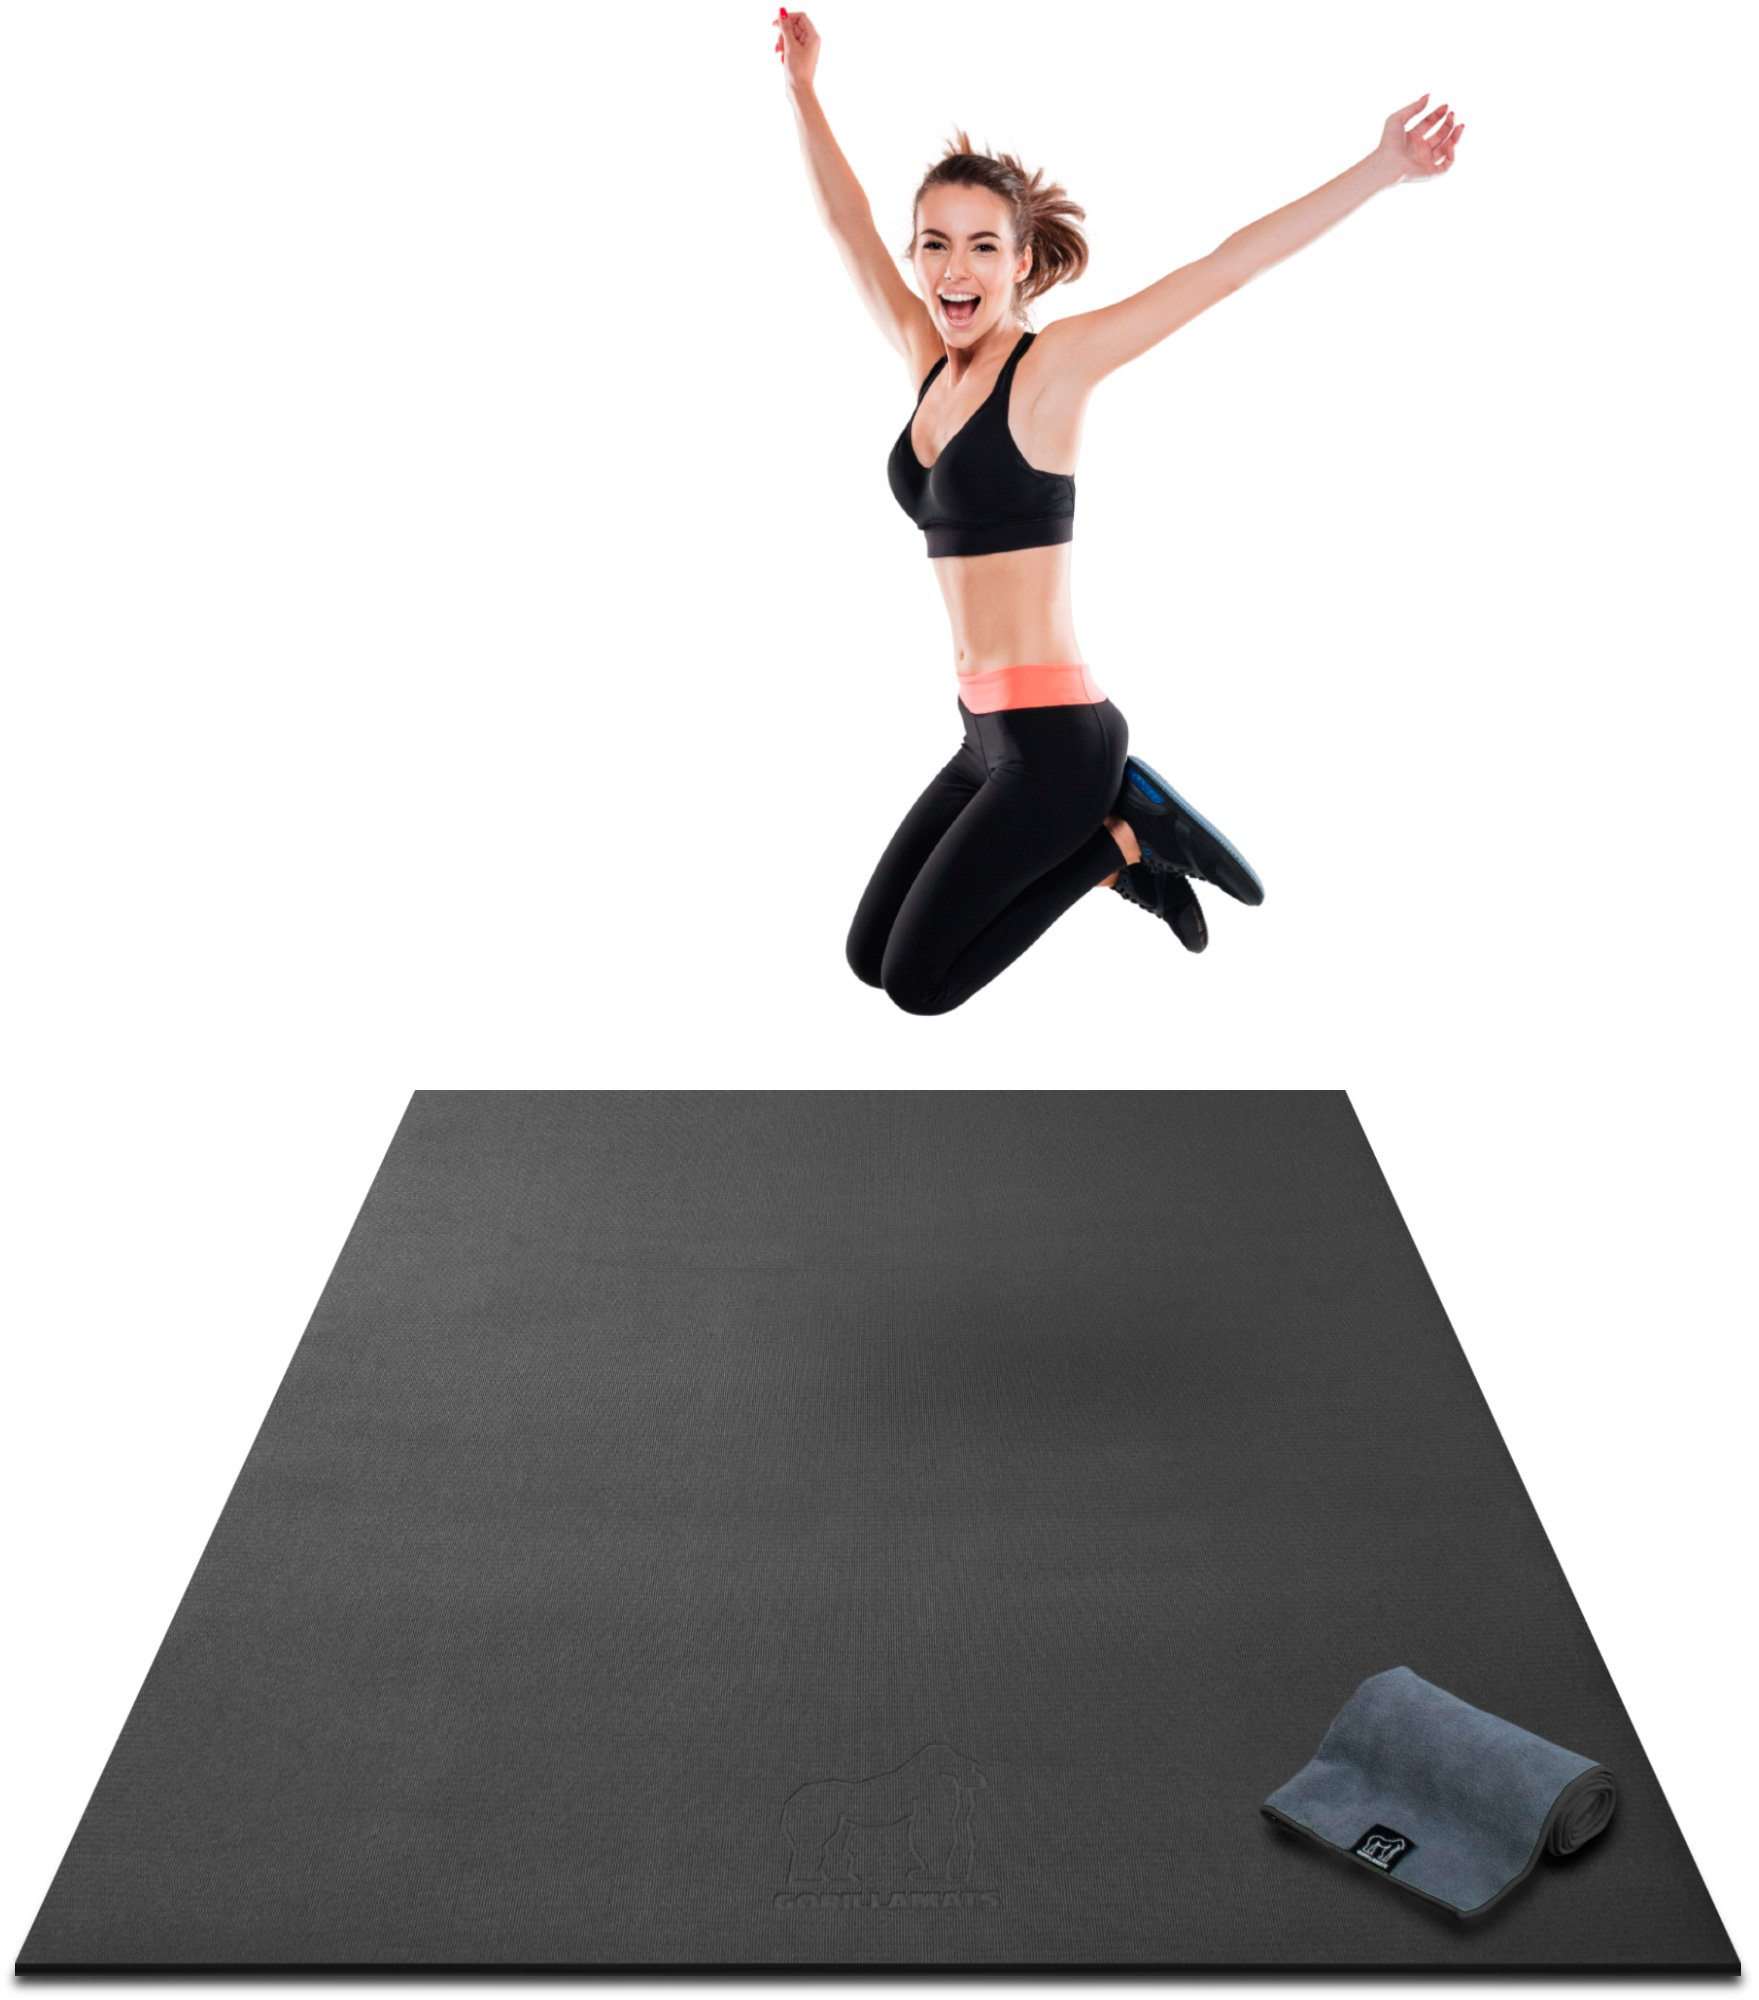 Premium Extra Thick Large Exercise Mat - 7' x 4' x 8mm Ultra Durable, Non-Slip, Workout Mats for Home Gym Flooring - Cardio, Plyo, MMA, Jump Mat - Use with or Without Shoes (84'' Long x 48'' Wide)